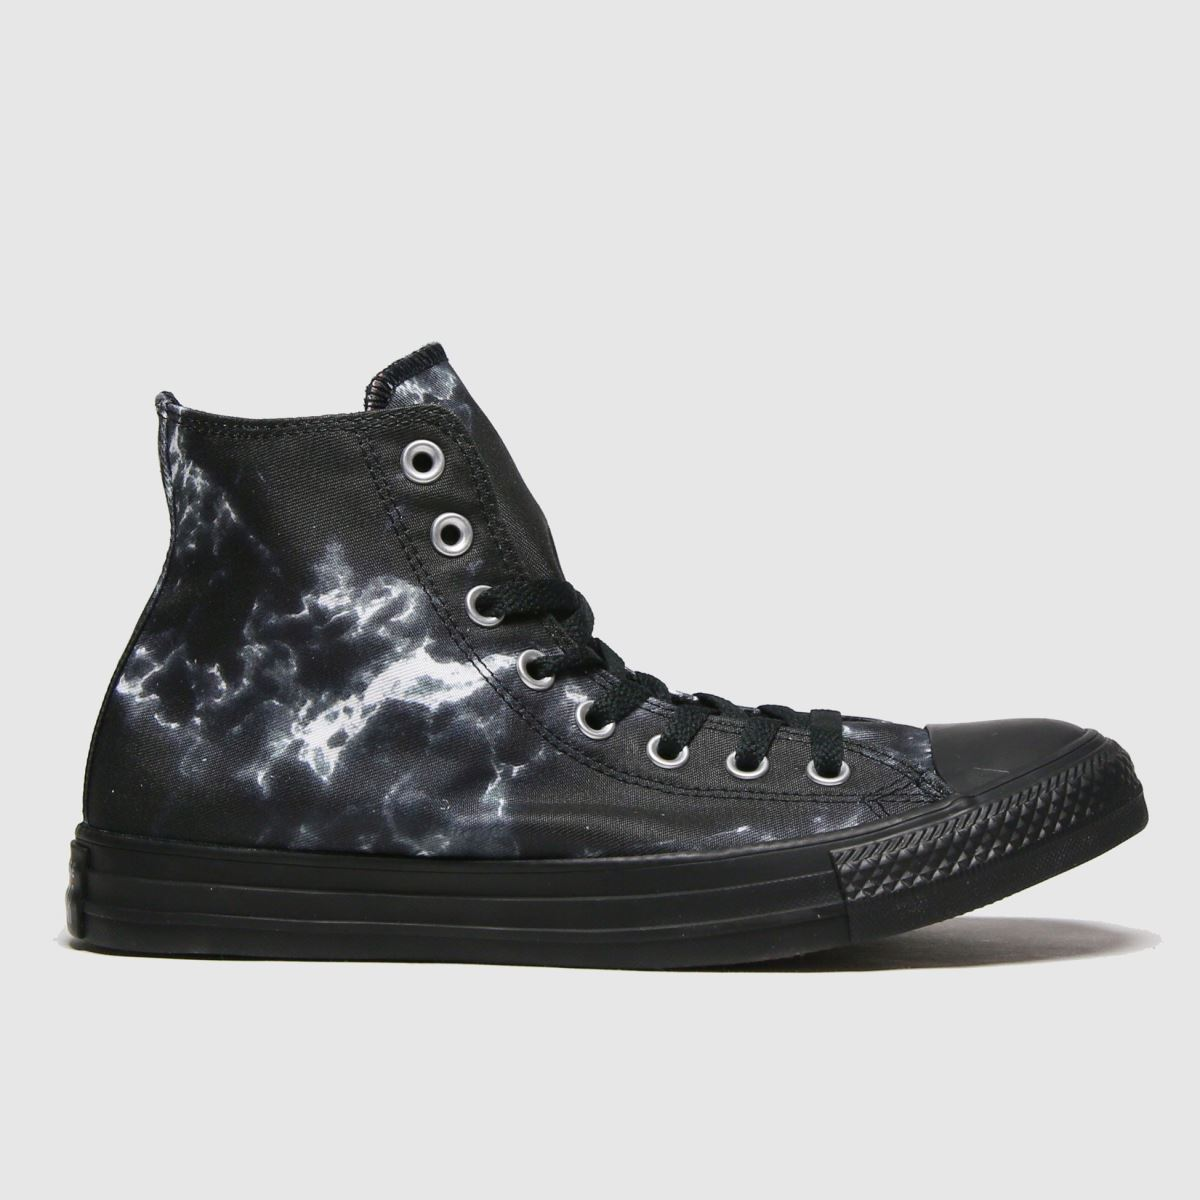 Converse Black & White Marble Hi Trainers